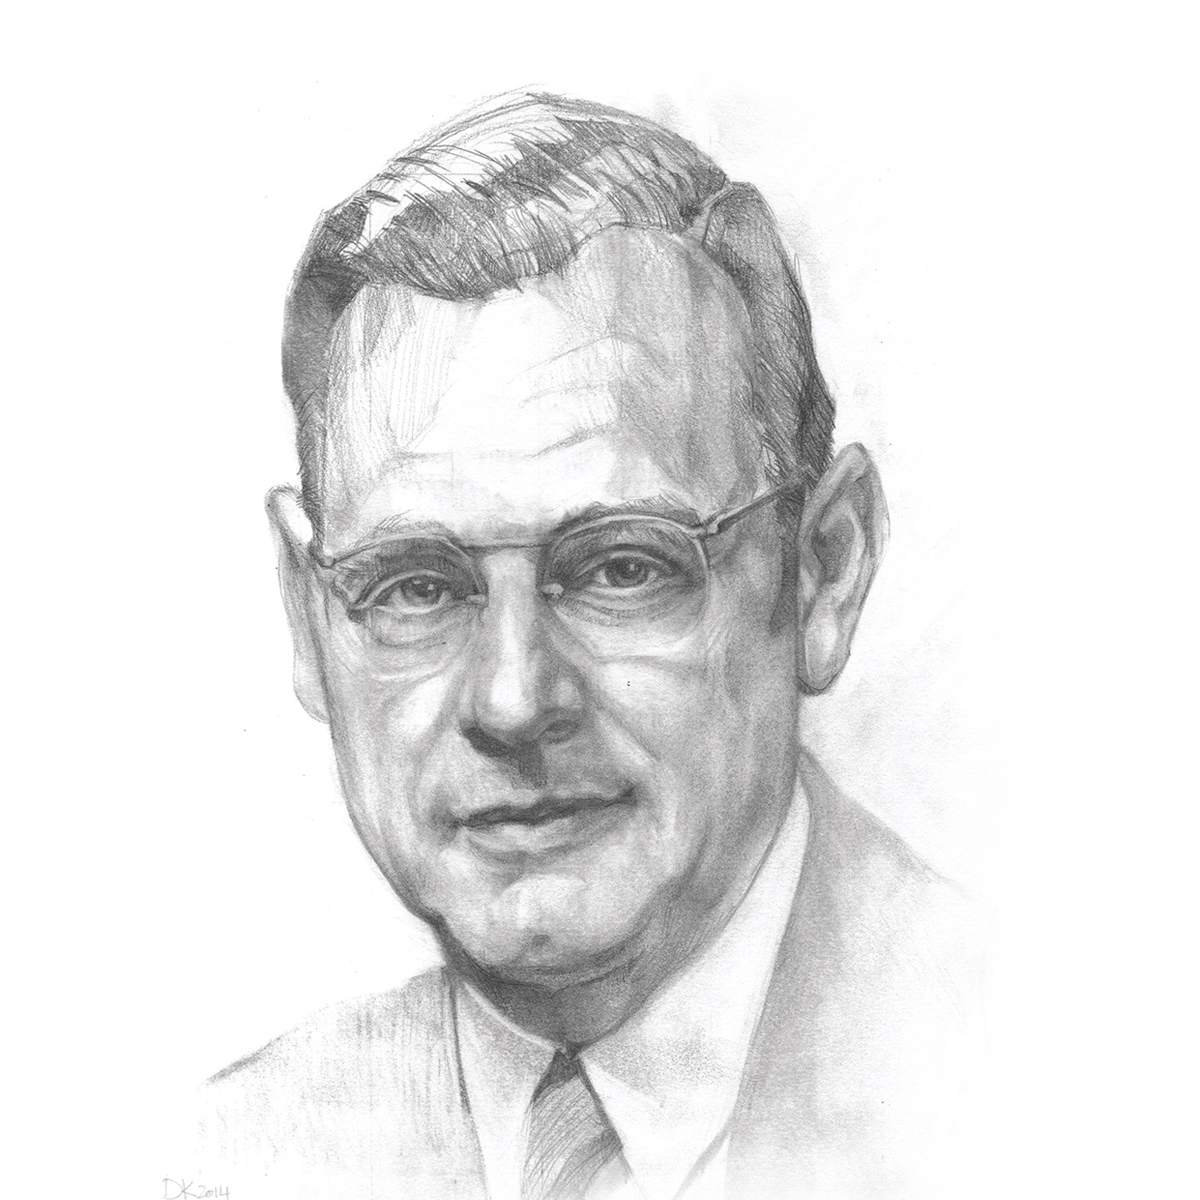 Pencil sketch of Fuller Seminary's first president, Harold John Ockenga